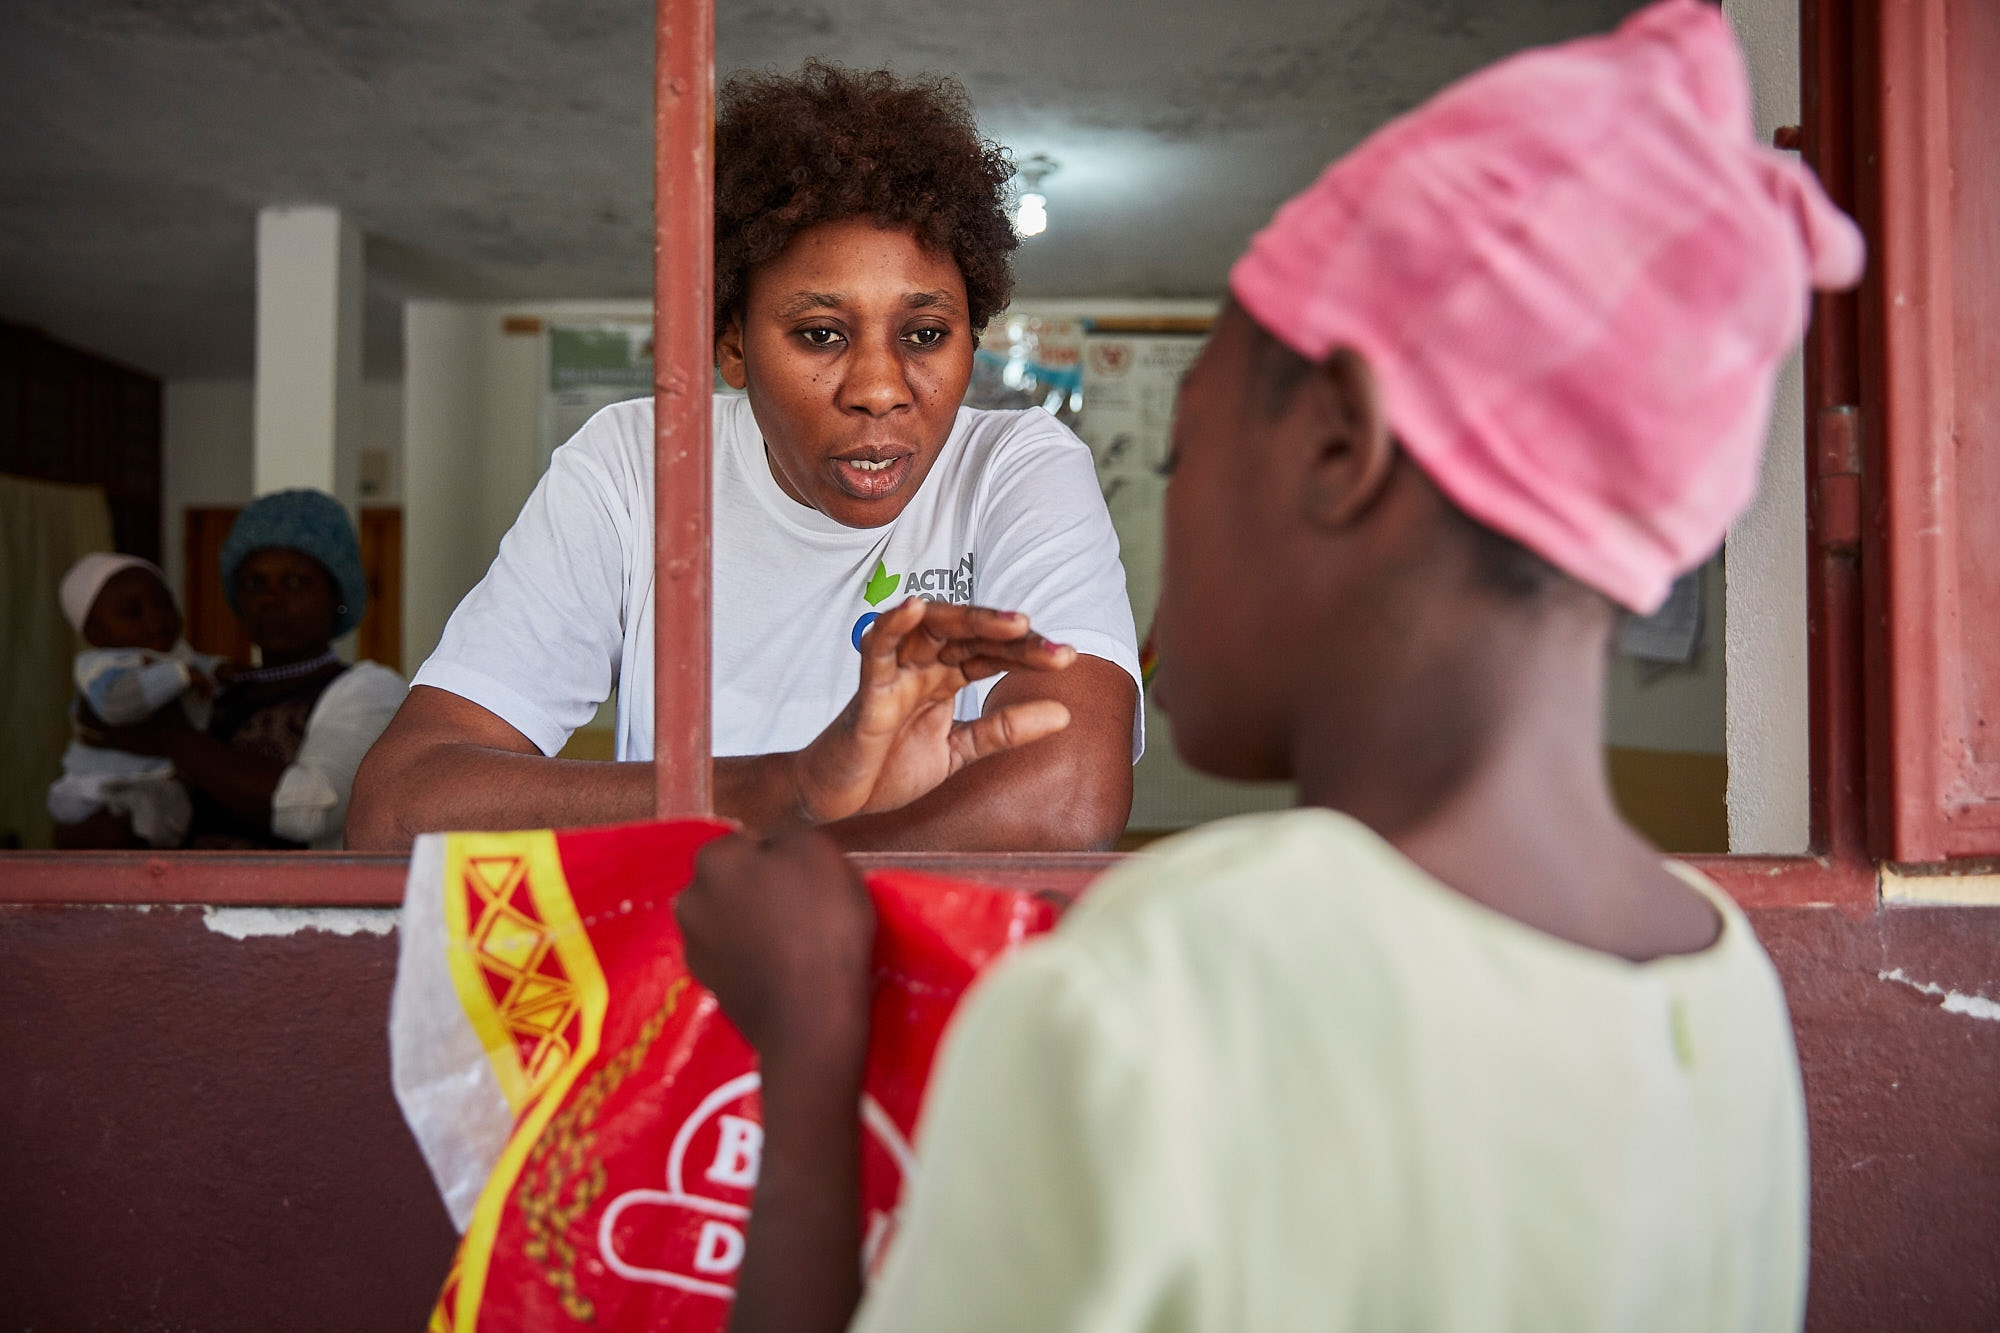 Jenite Forrelus, a nurse and health education specialist, leads community nutrition trainings, specializing in improving care and feeding practices among mothers of children from 6 to 23 months.